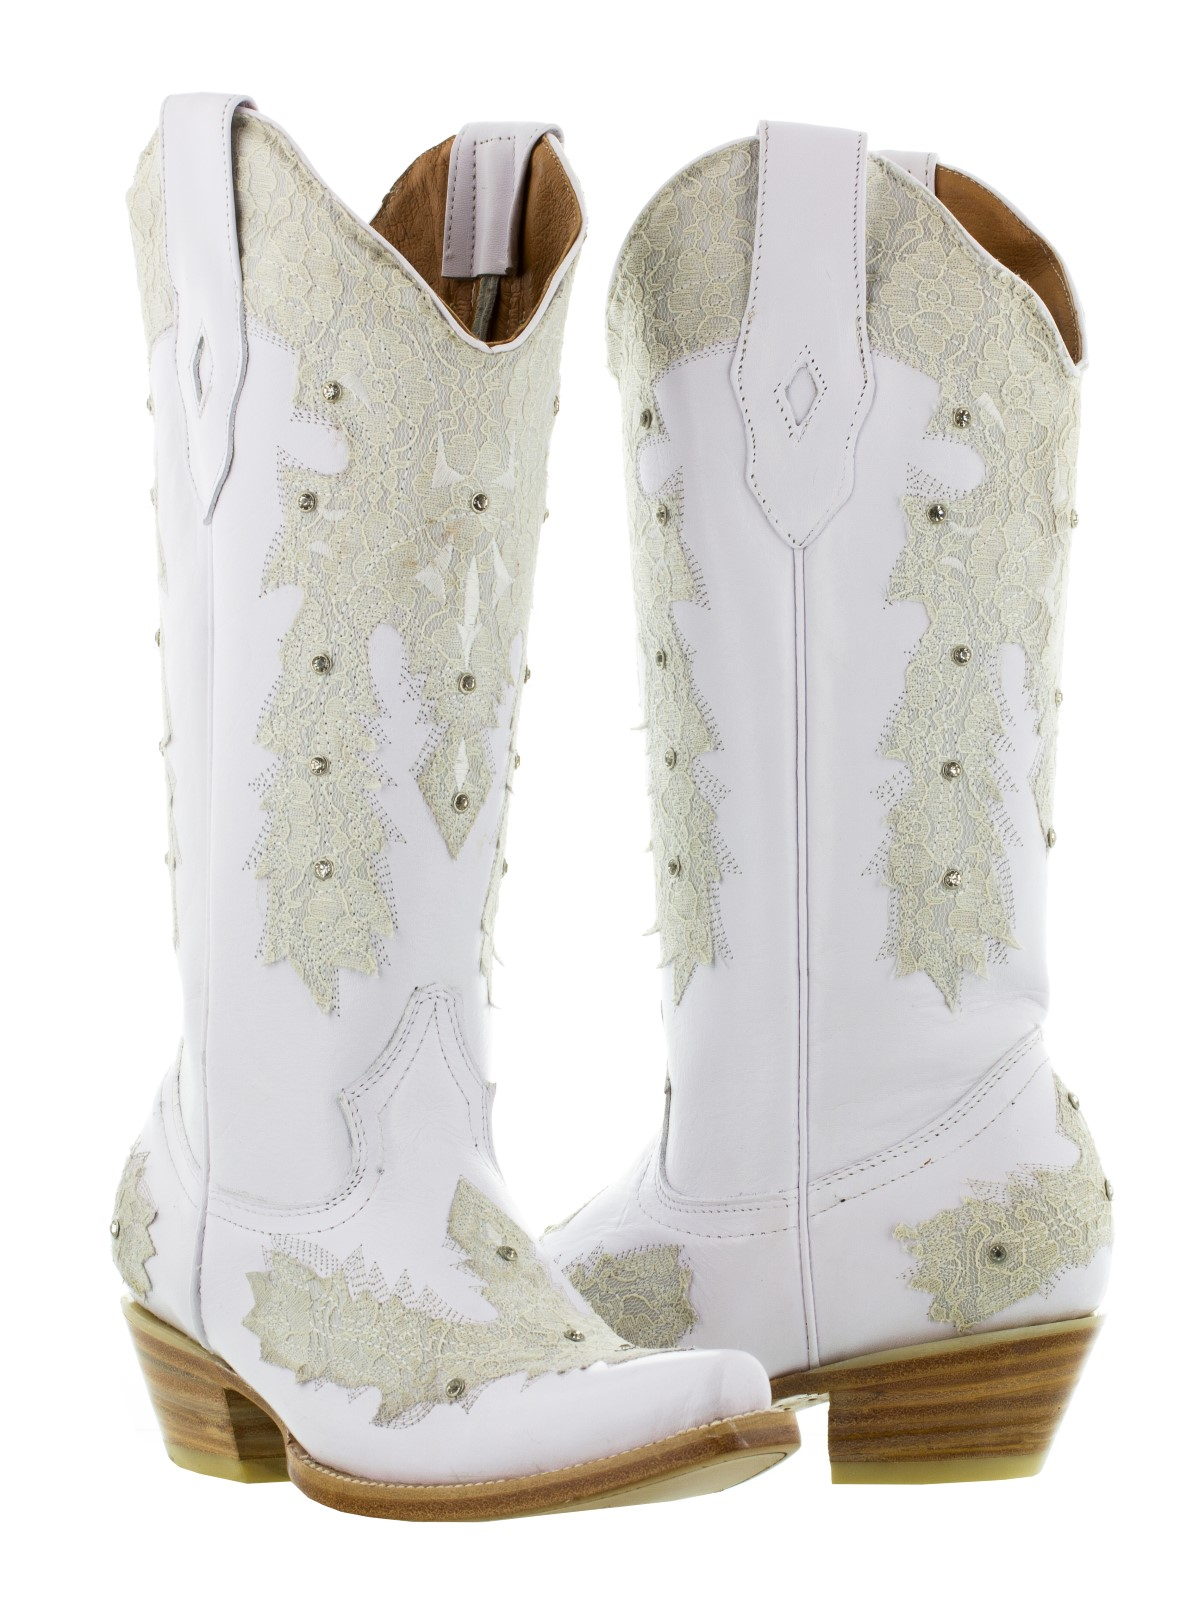 Womens White Leather Western Wear Wedding Cowboy Boots Rhinestones Rodeo Style